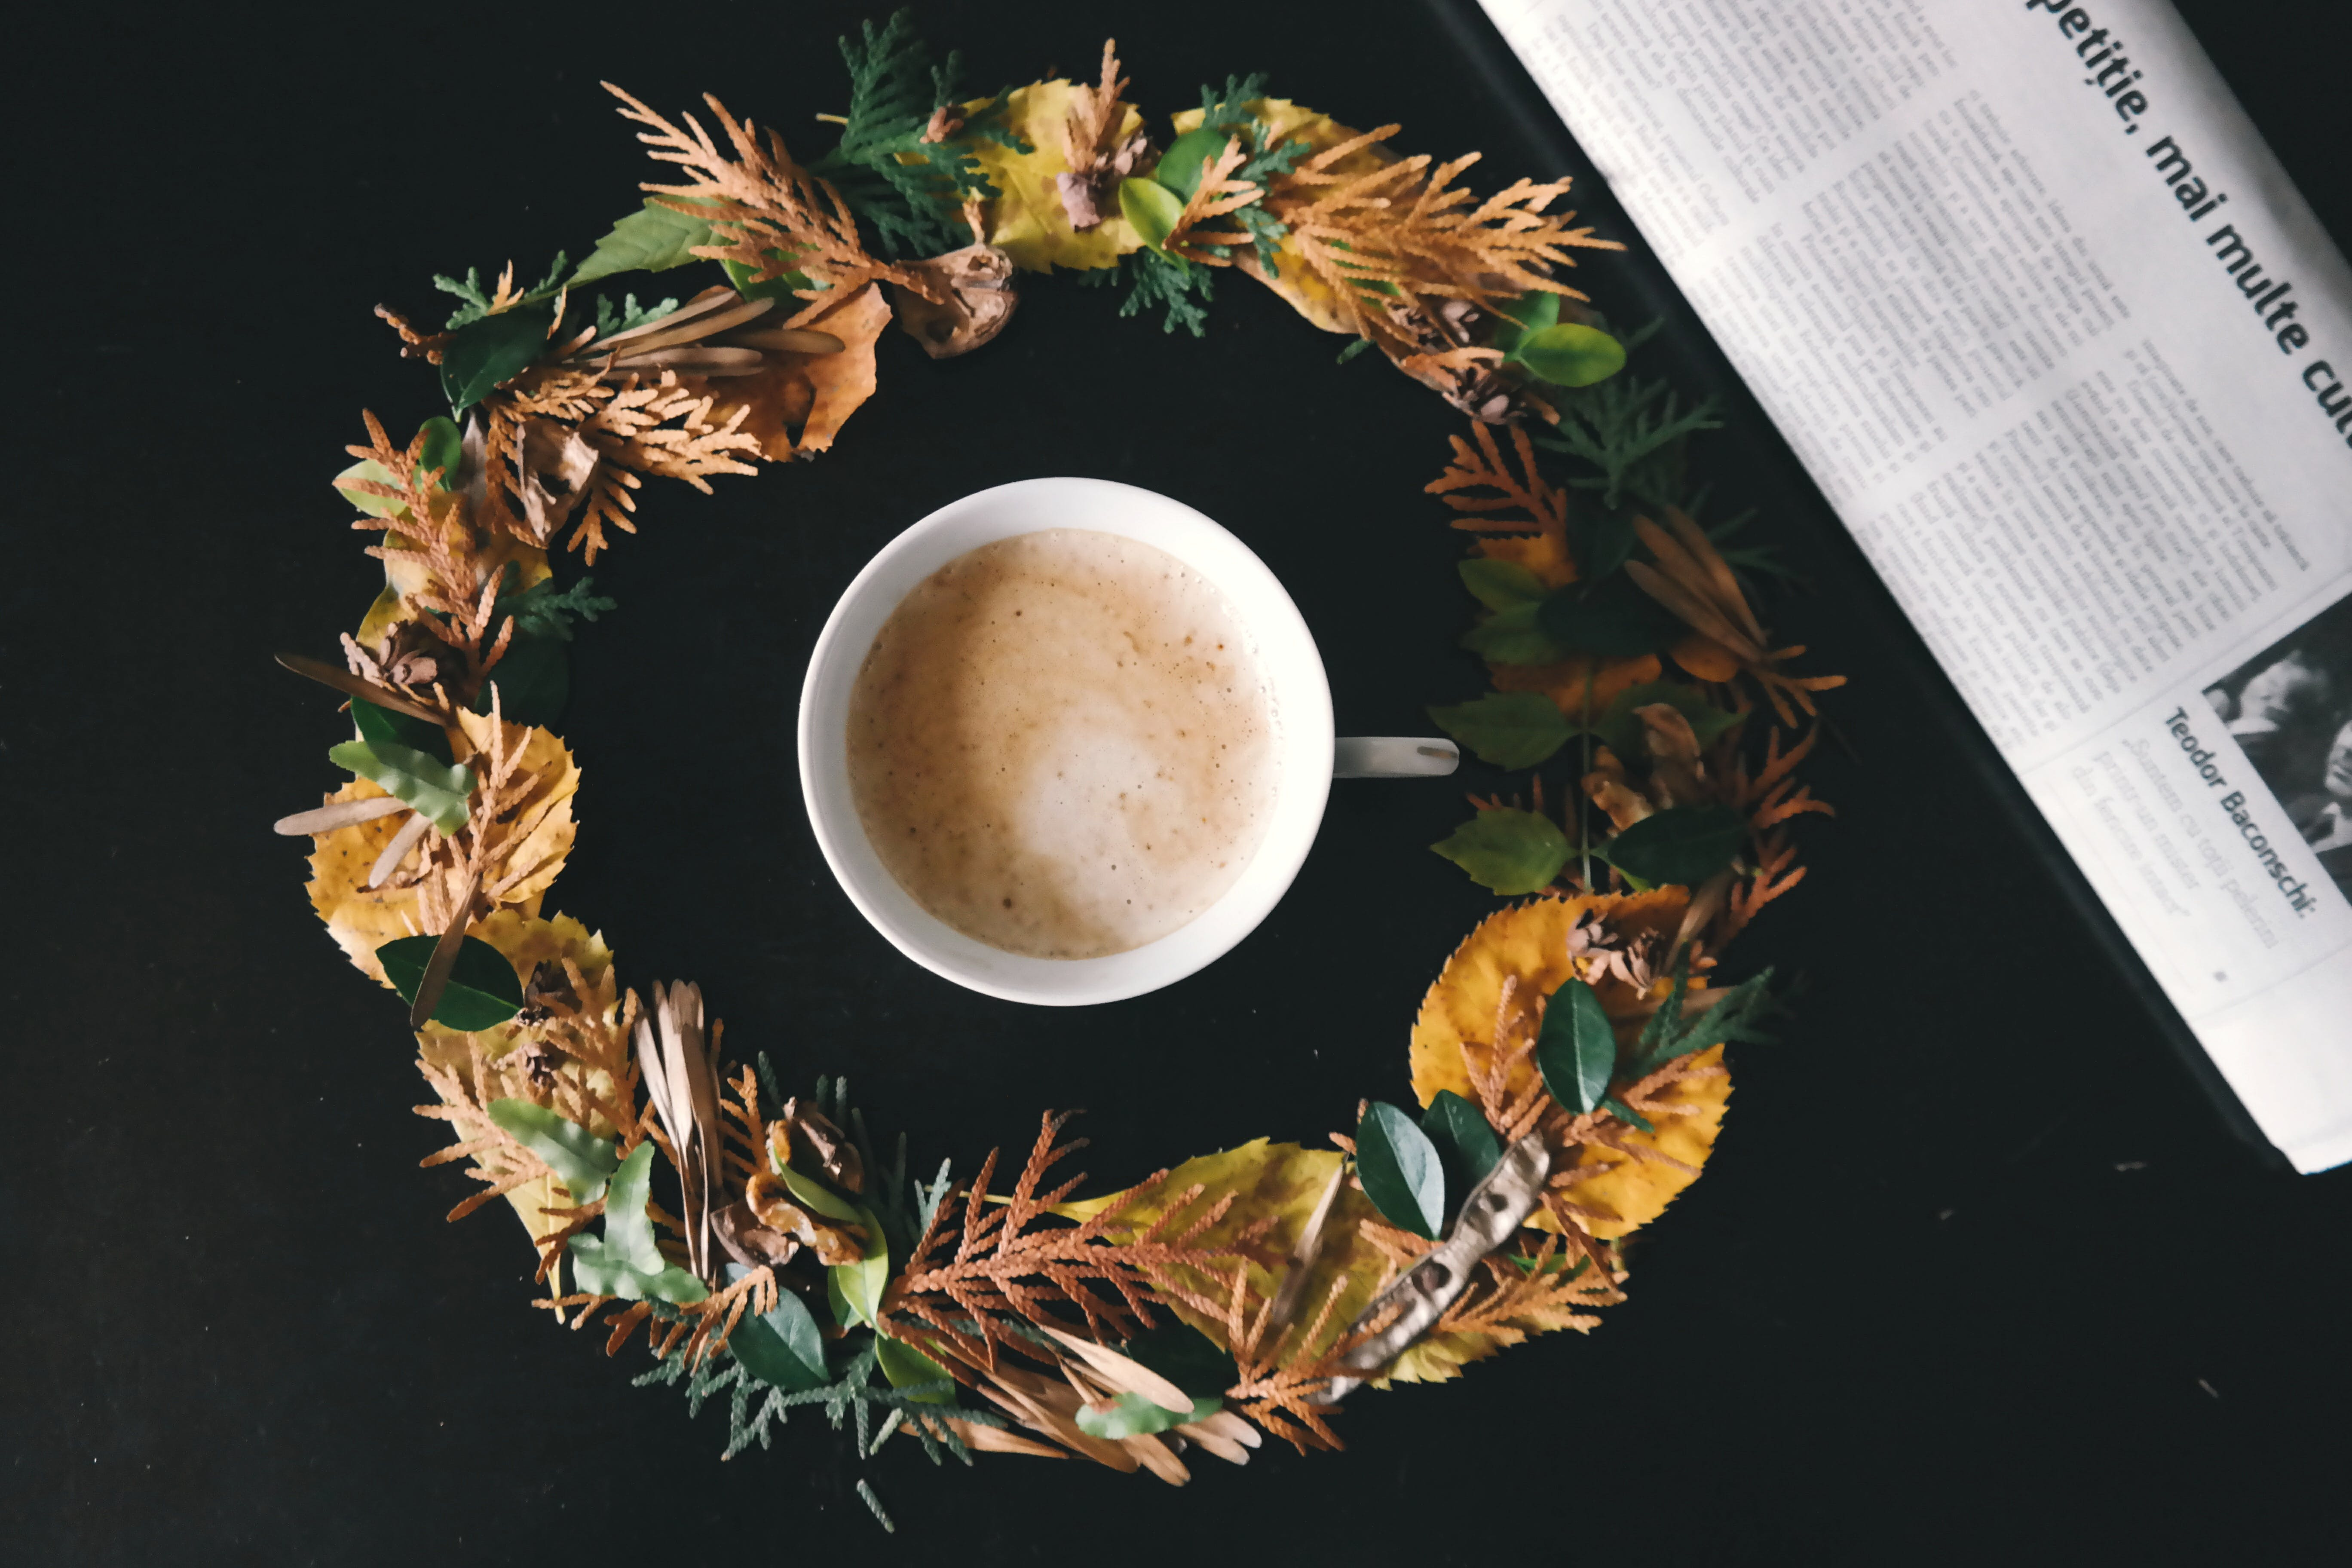 White Cup of Coffee in the Middle of Yellow and Green Flower Wreath